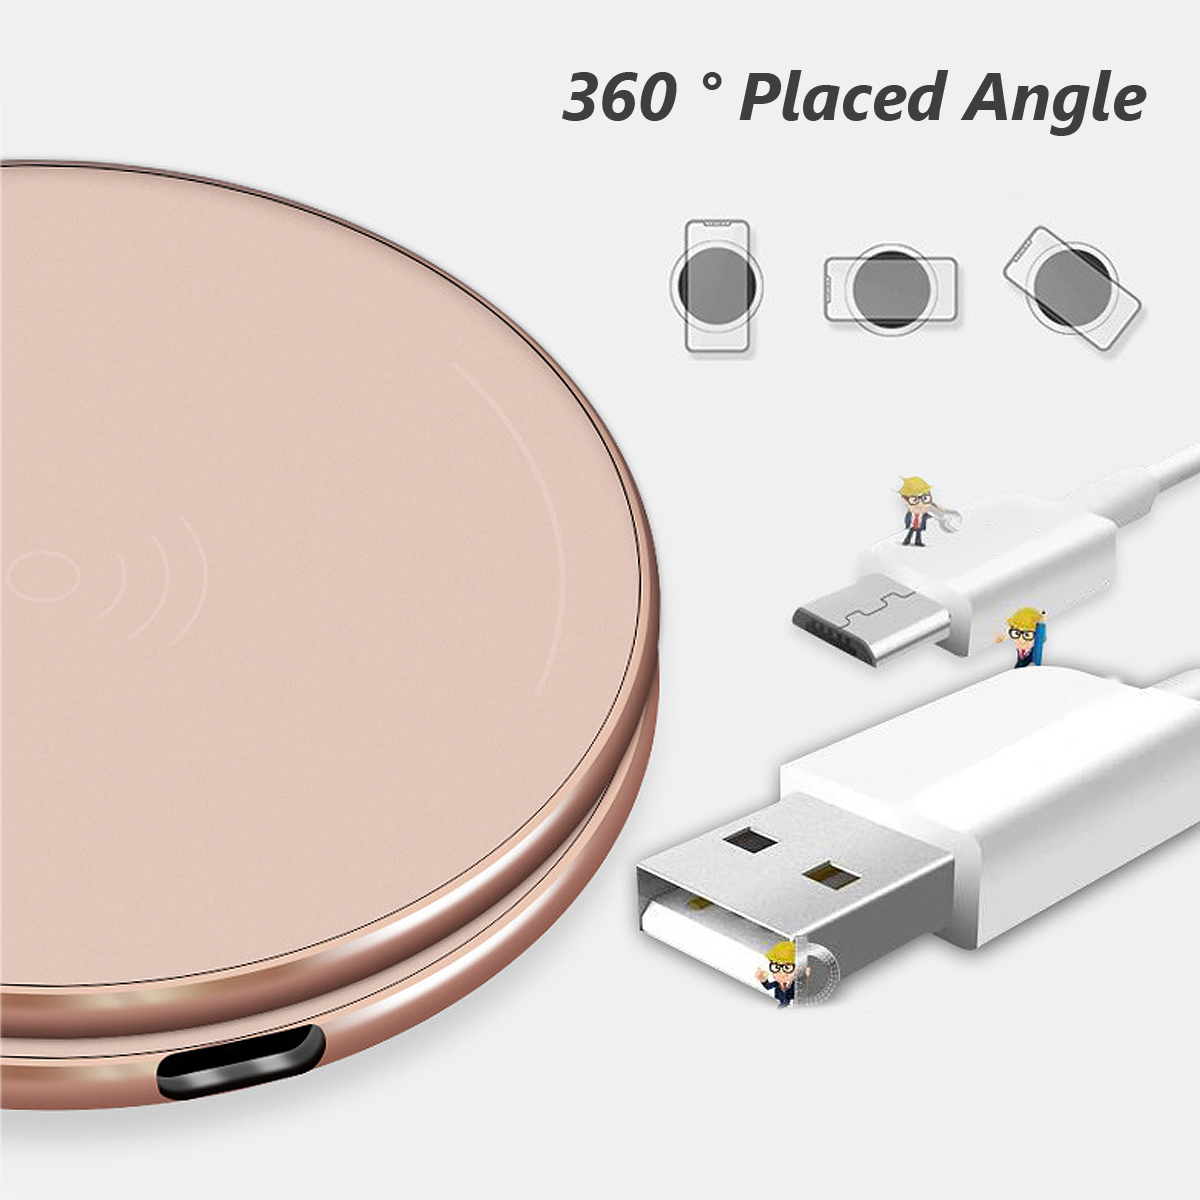 Bakeey 10W Metal Scrub QI wireless Fast Charging Charger Pad For iPhoneX 8/8Plus Samsung S8 iwatch 3